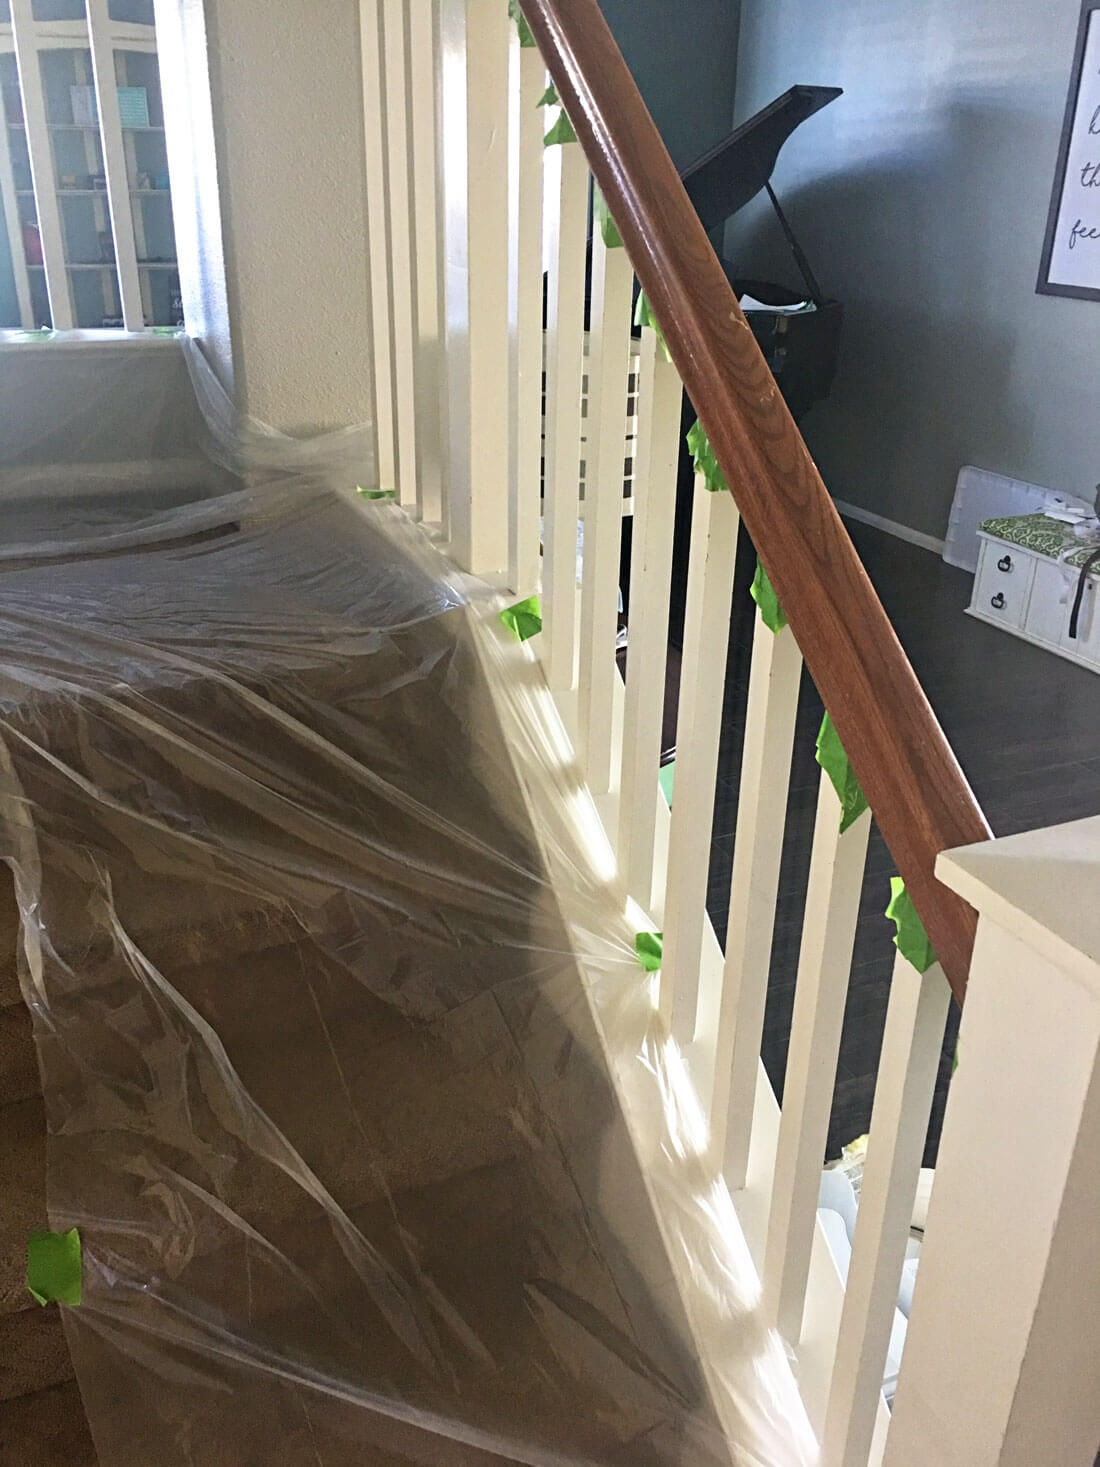 How To Paint Your Stair Railing And Banister Black From 30Daysblog | Indoor Stair Railings Home Depot | Metal | Interior | Deck Stair | Aluminum Railing | Iron Stair